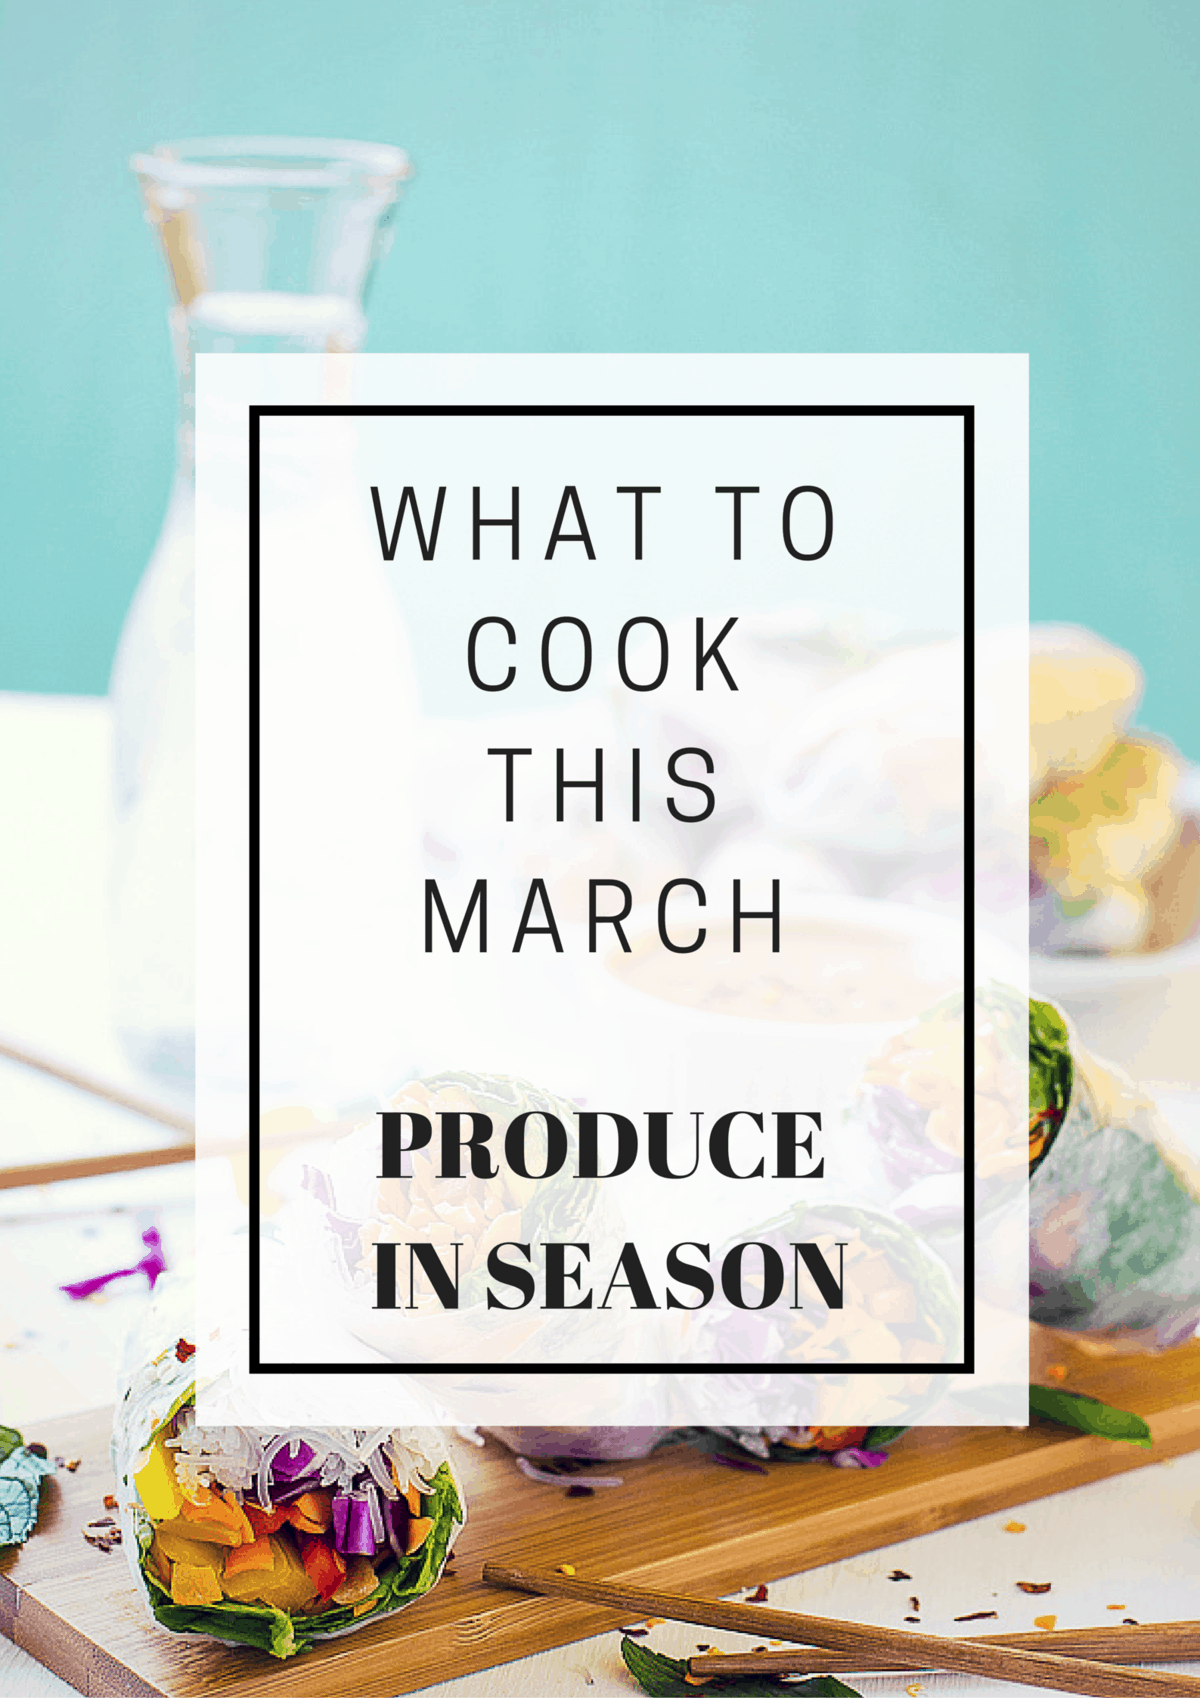 What to cook this march title graphic.